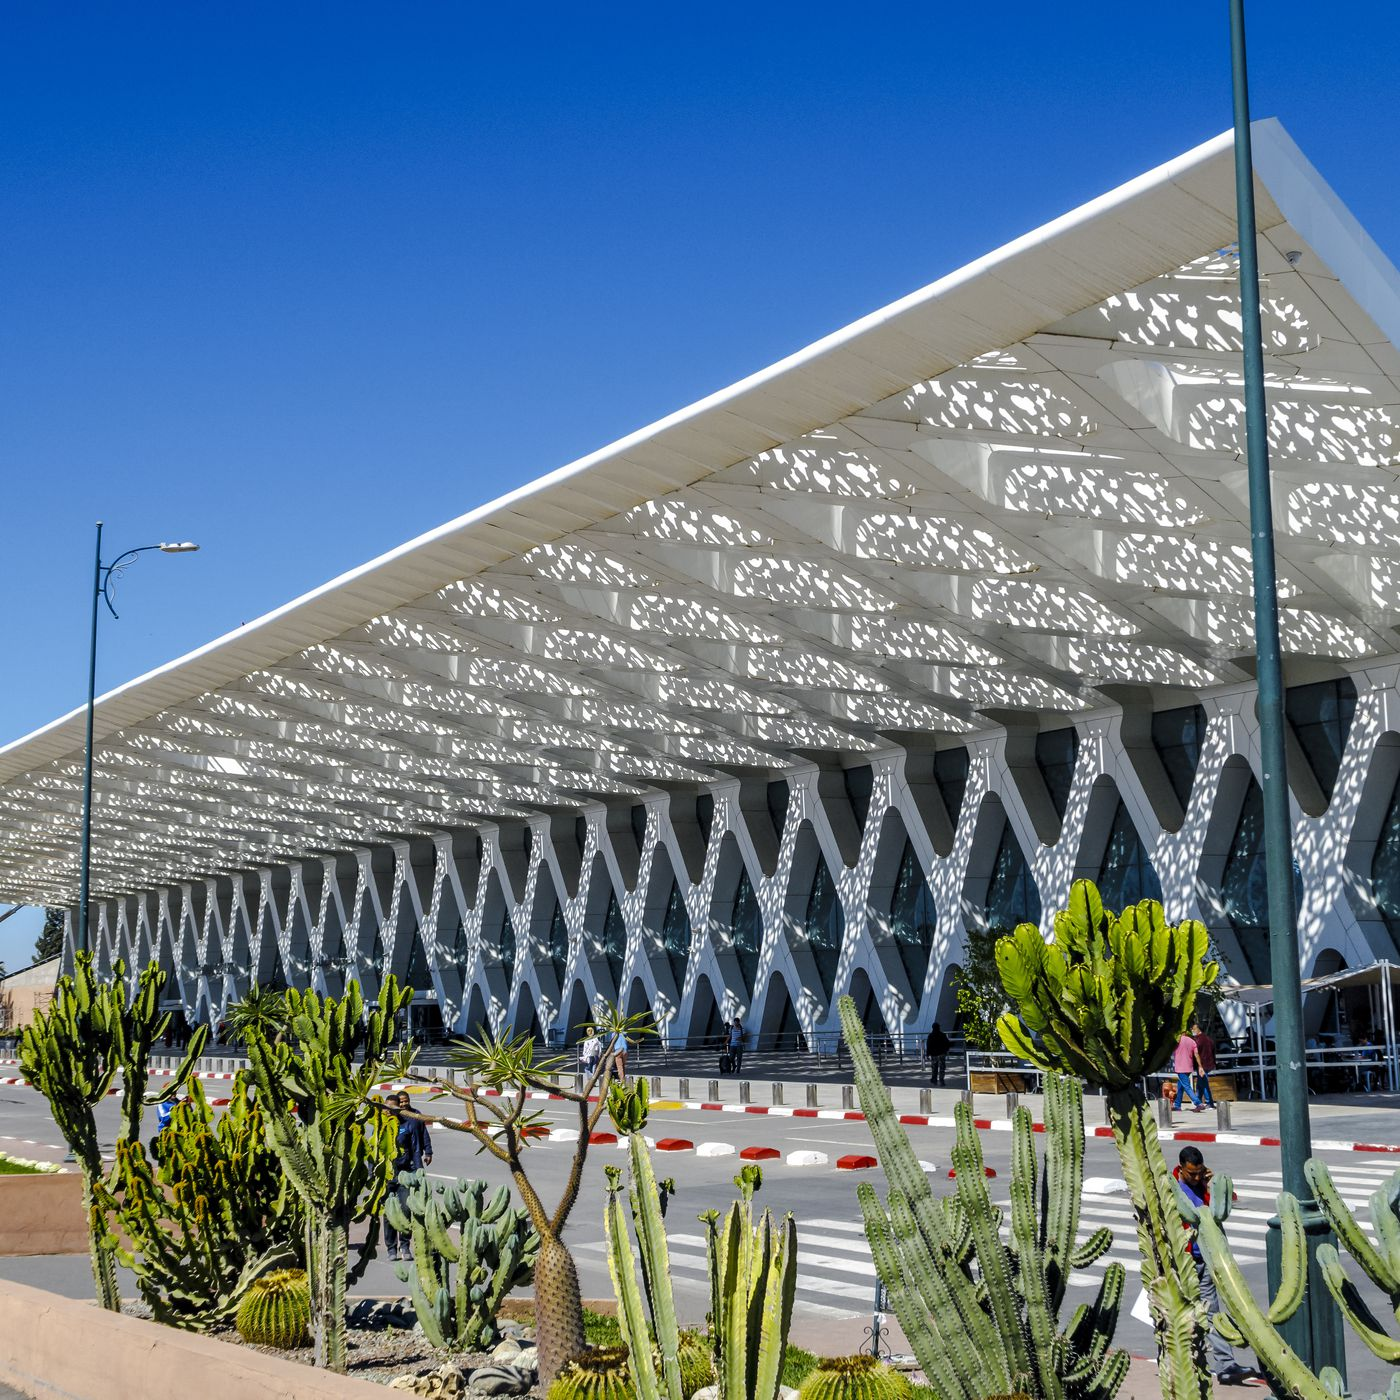 Airport Architecture The 14 Most Beautiful Airports In The World Curbed